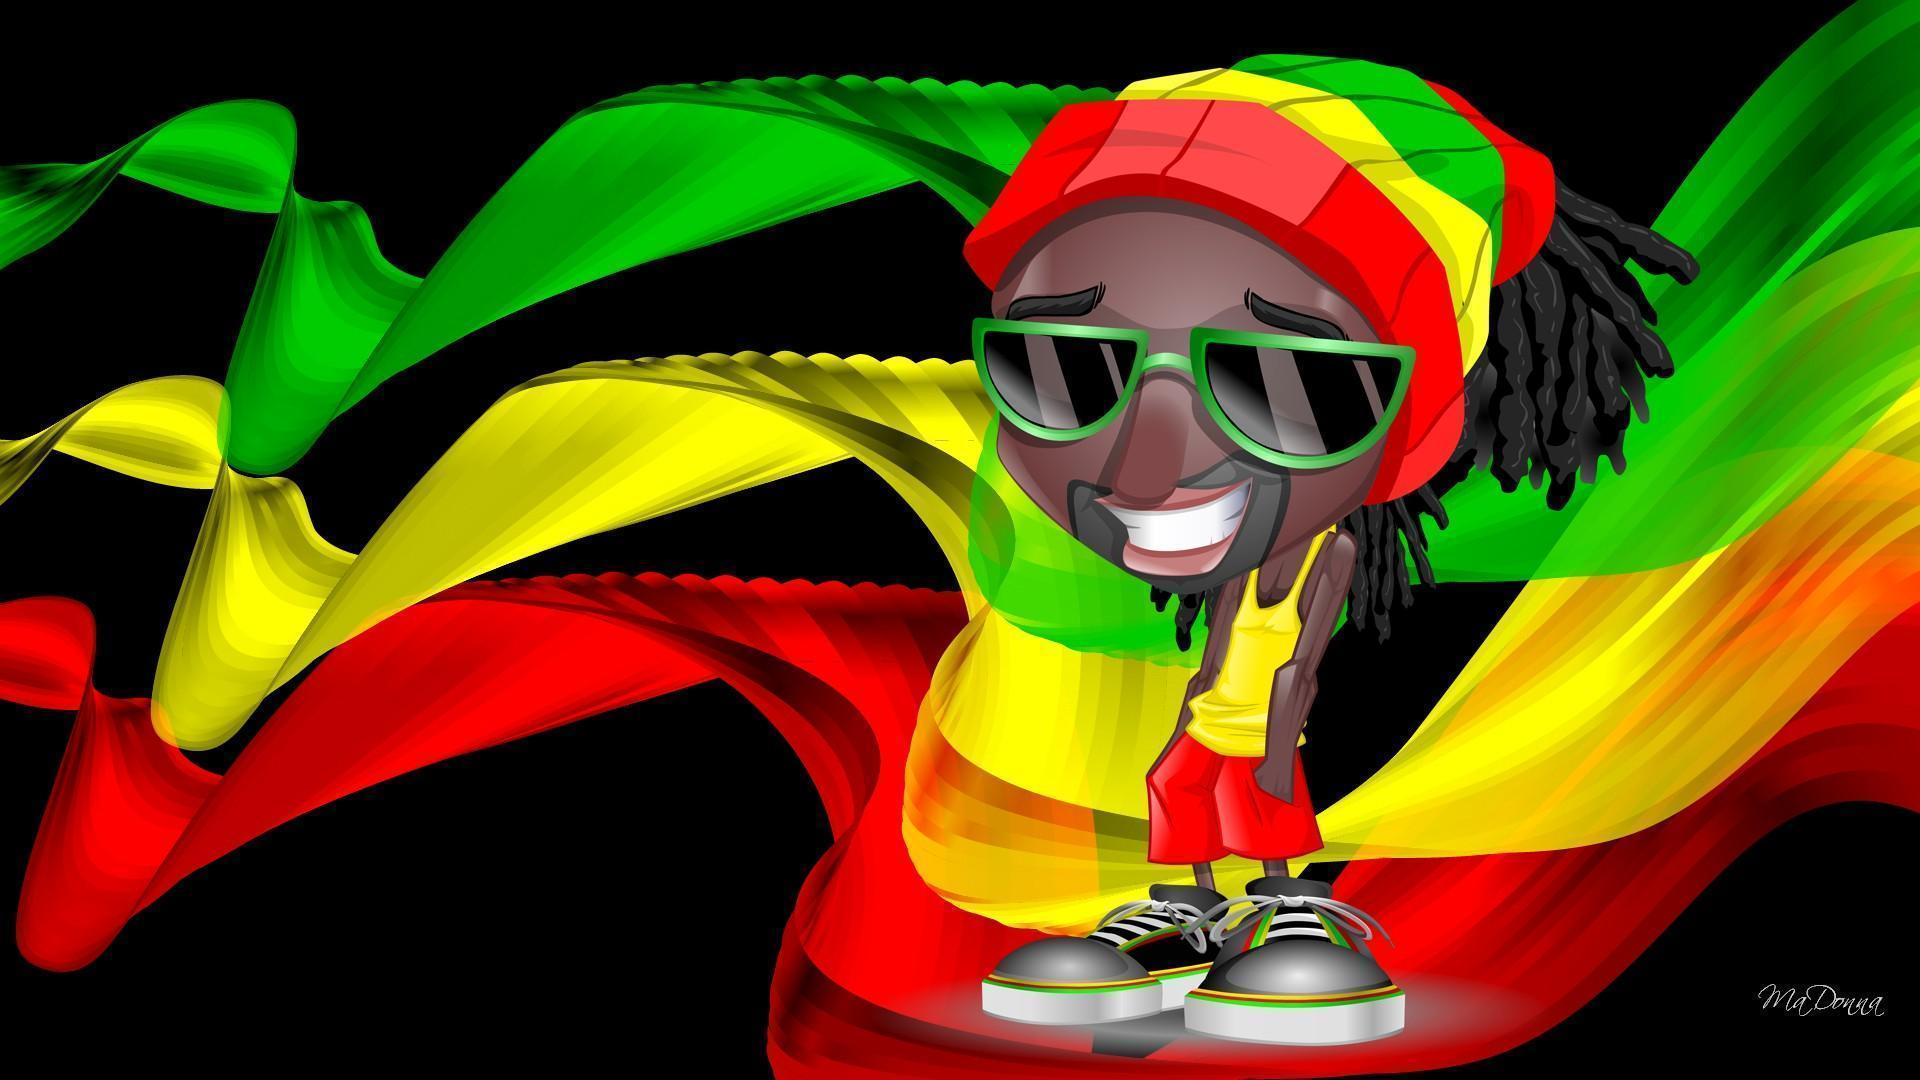 reggae music on rastafarians Reggae music's most famous and popular prophet is bob marley  most consider marley responsible for merging reggae music with rastafarian beliefs, making it the popular sound that it is today it is said hale selassie wore a ring with the lion of judah that was given to bob marley at the time of his death toots and the maytals are also.